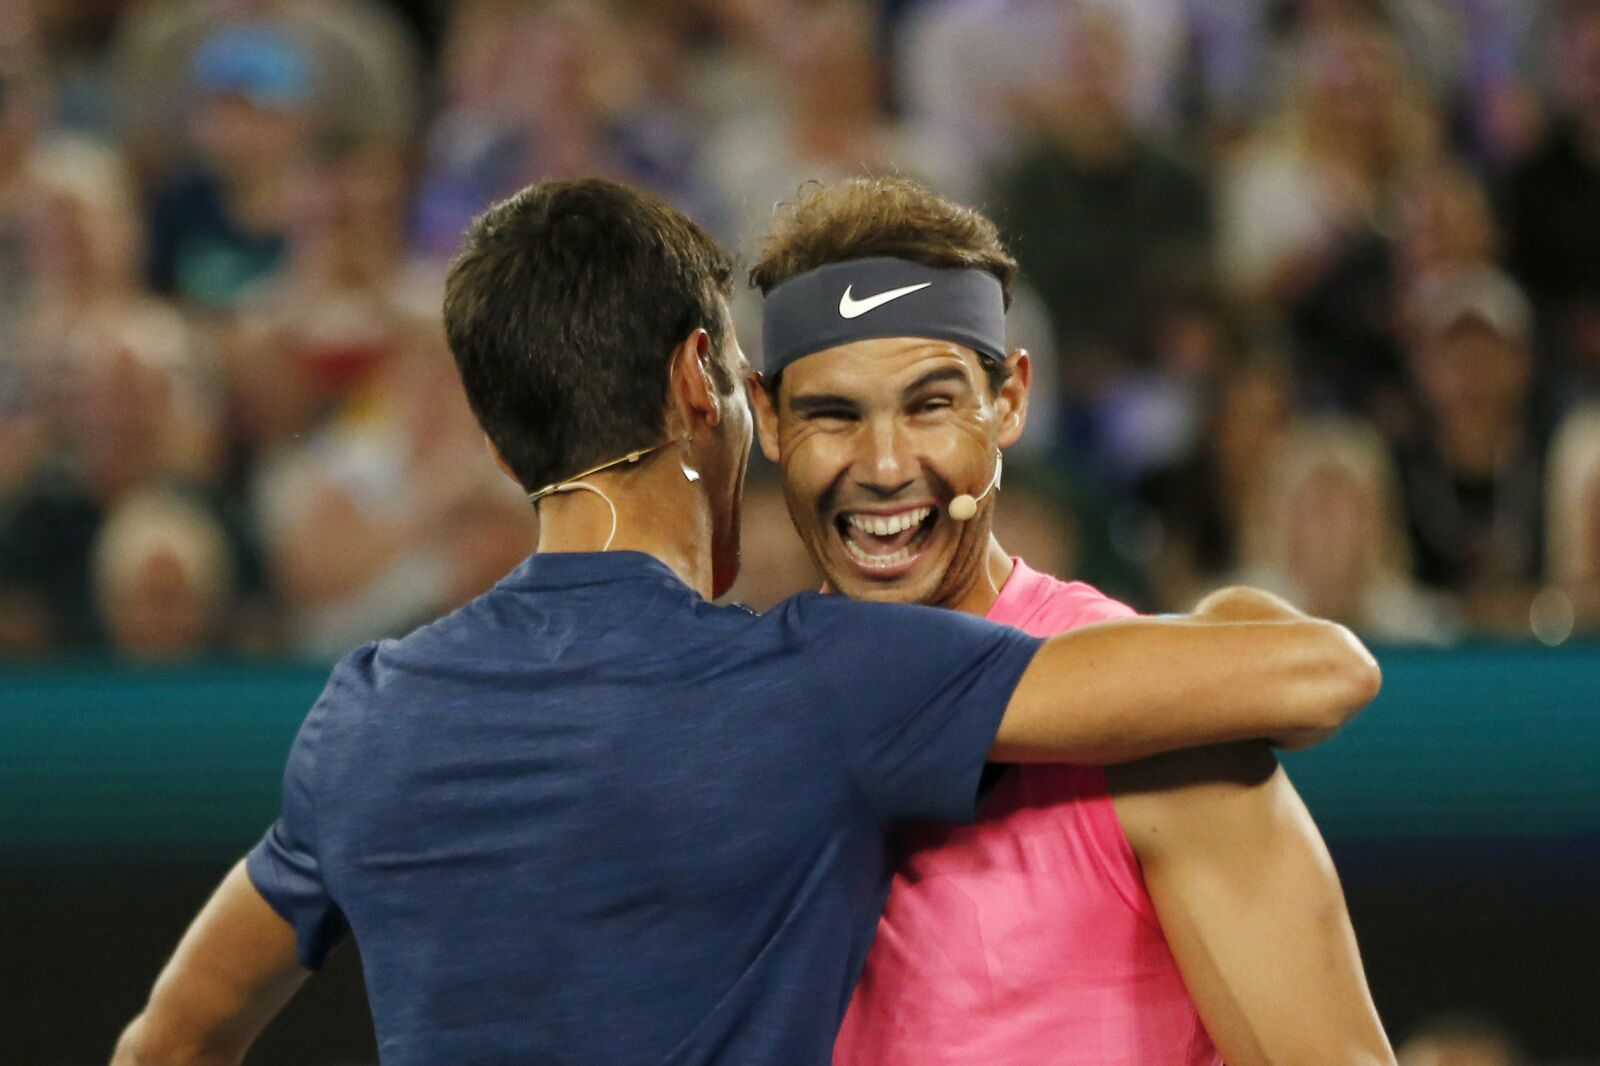 Australian Open draw winners and losers: Good for Nadal, bad for Serena